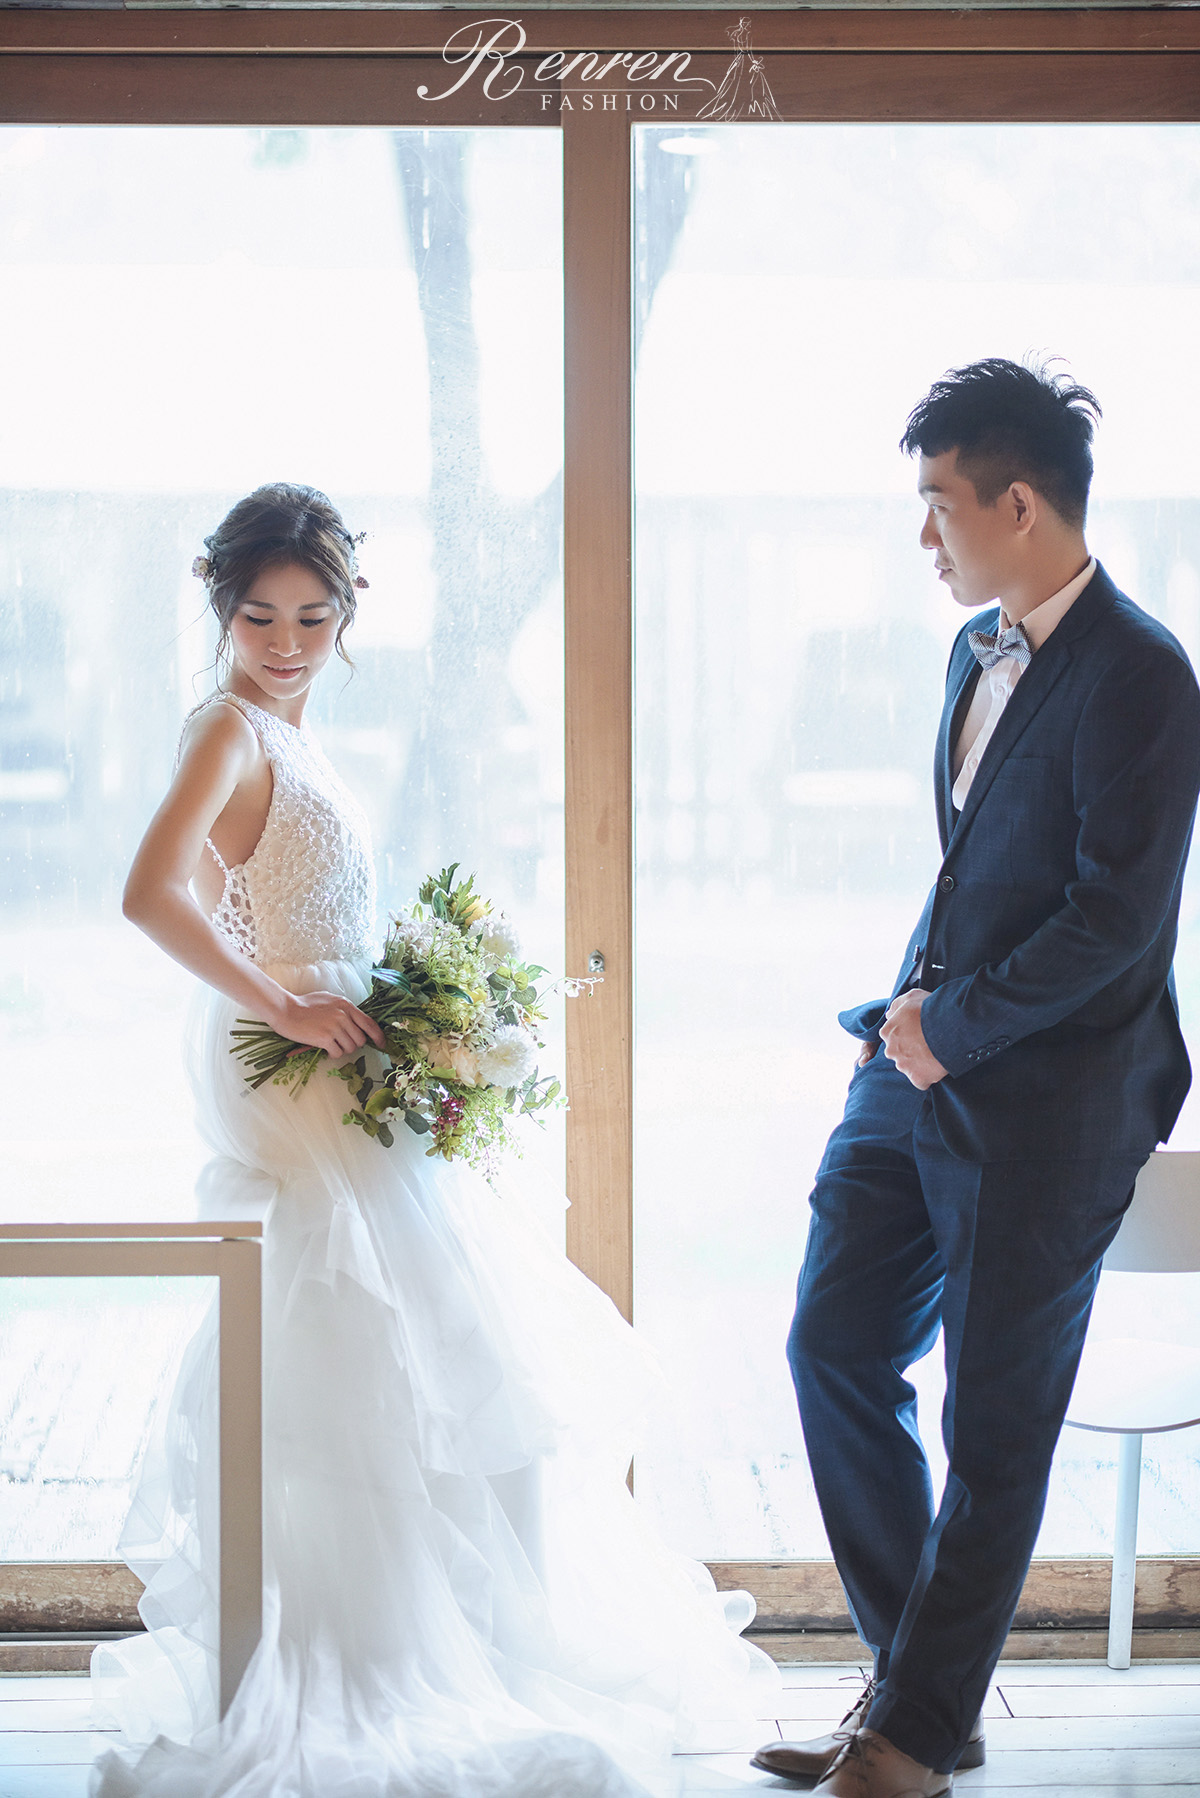 RenRen-Mundo-StylistMei-Wedding-顏氏牧場-婚紗-04